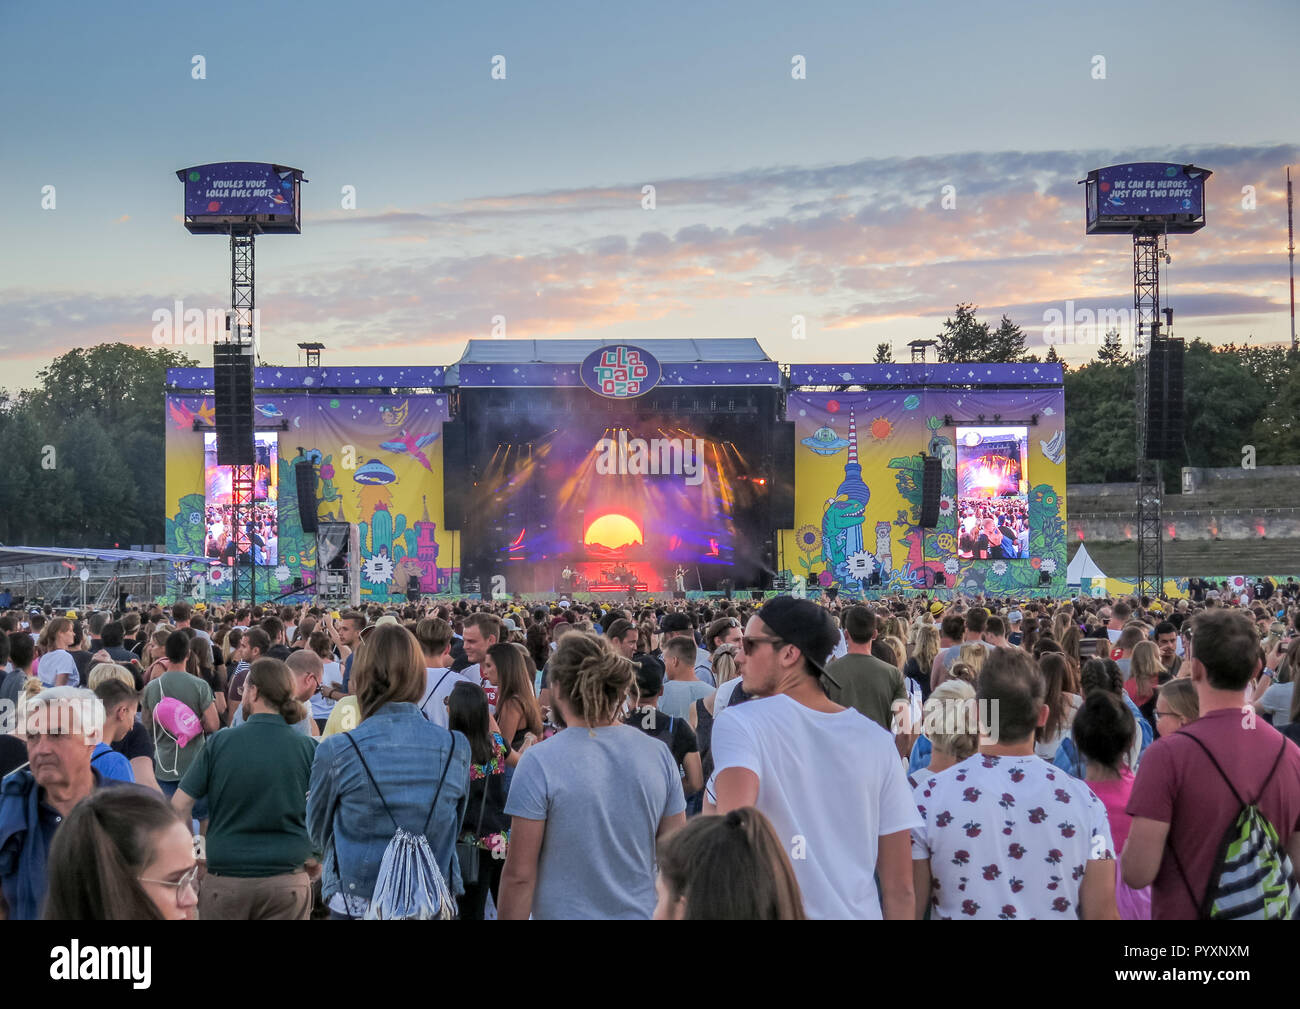 Concert Imagine Dragons, Lollapalooza festival, Olympic stadium, Westend, Berlin, Germany, Konzert Imagine Dragons, Lollapalooza-Festival, Olympiastad - Stock Image